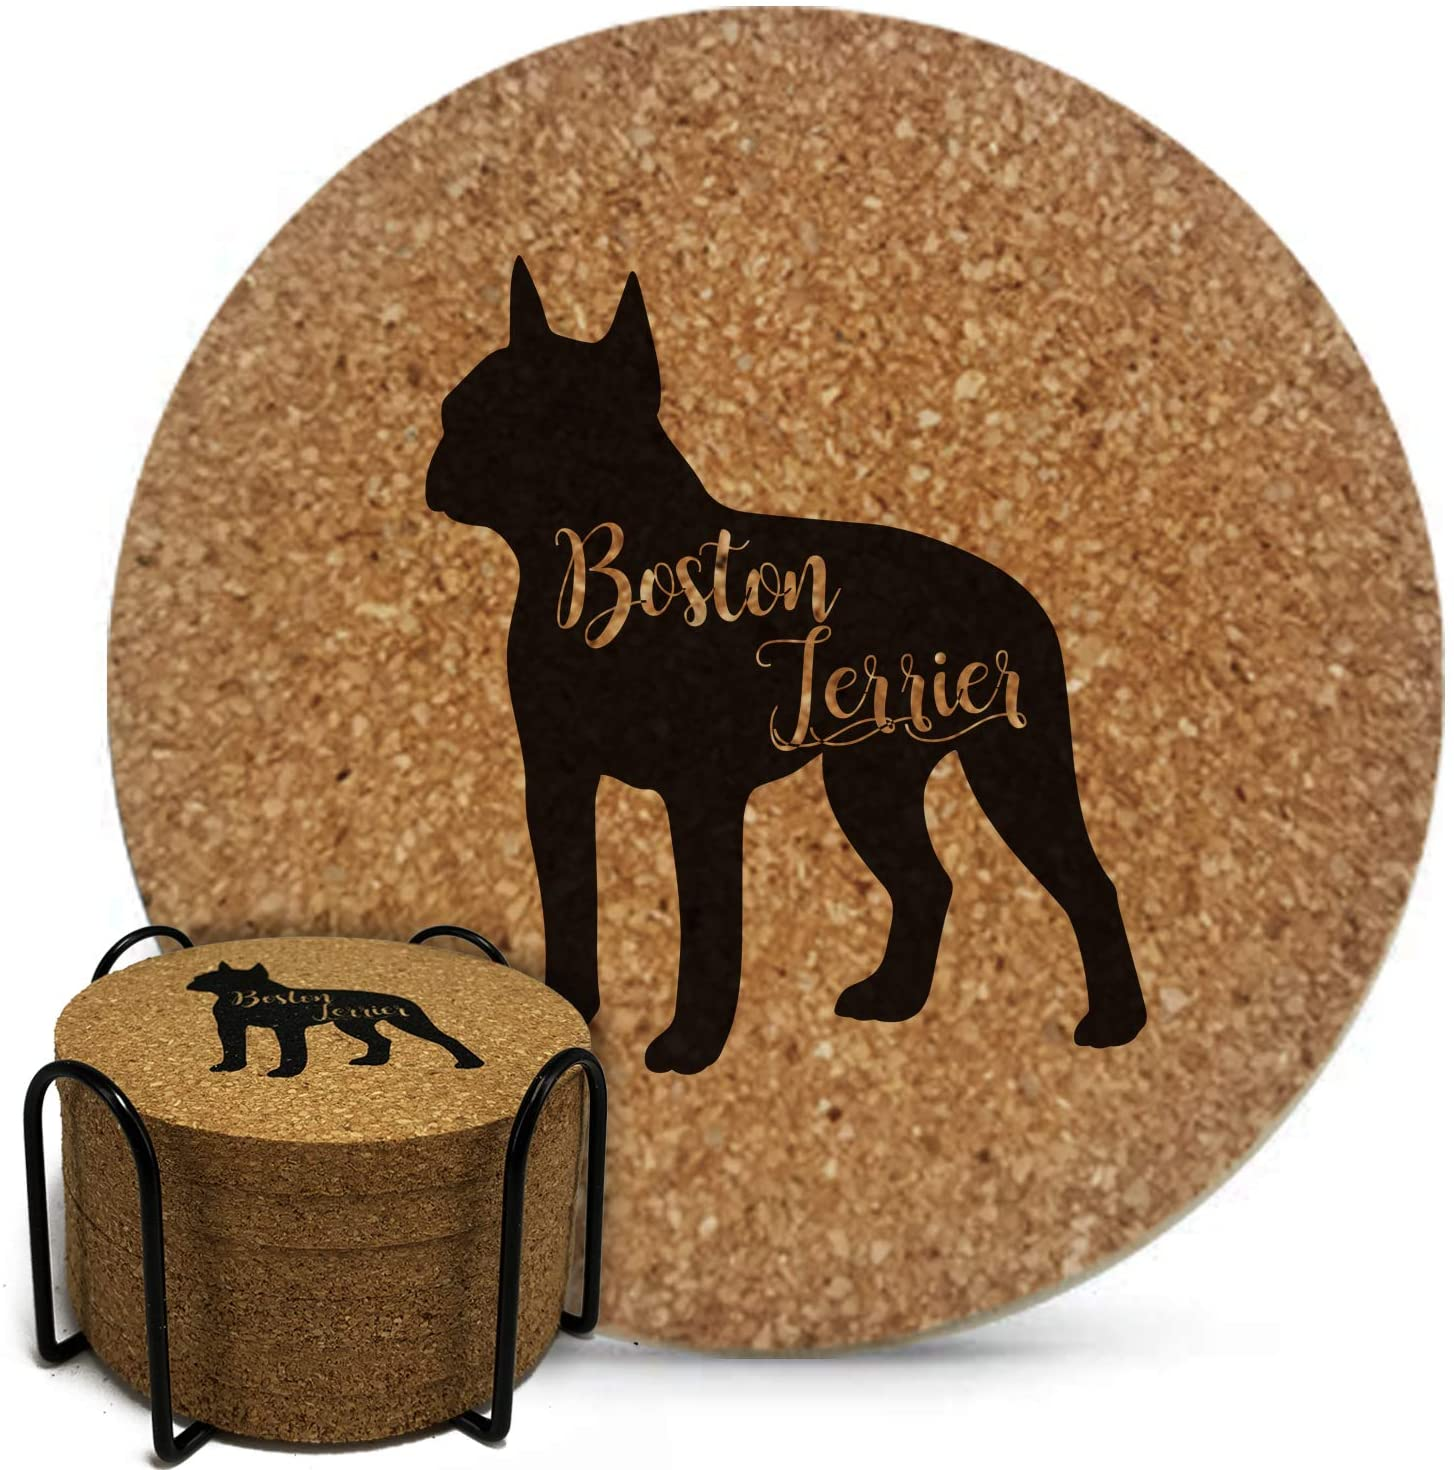 Onebttl 6PCS Dog Themed Coasters Boston Terrier Natural Cork Coasters Set with Metal Holder for Drinks Absorbent, Heat & Water Resistant, Perfect Presents for Dog Mom, Dog Lovers(3.9 3.9 0.35 Inch)